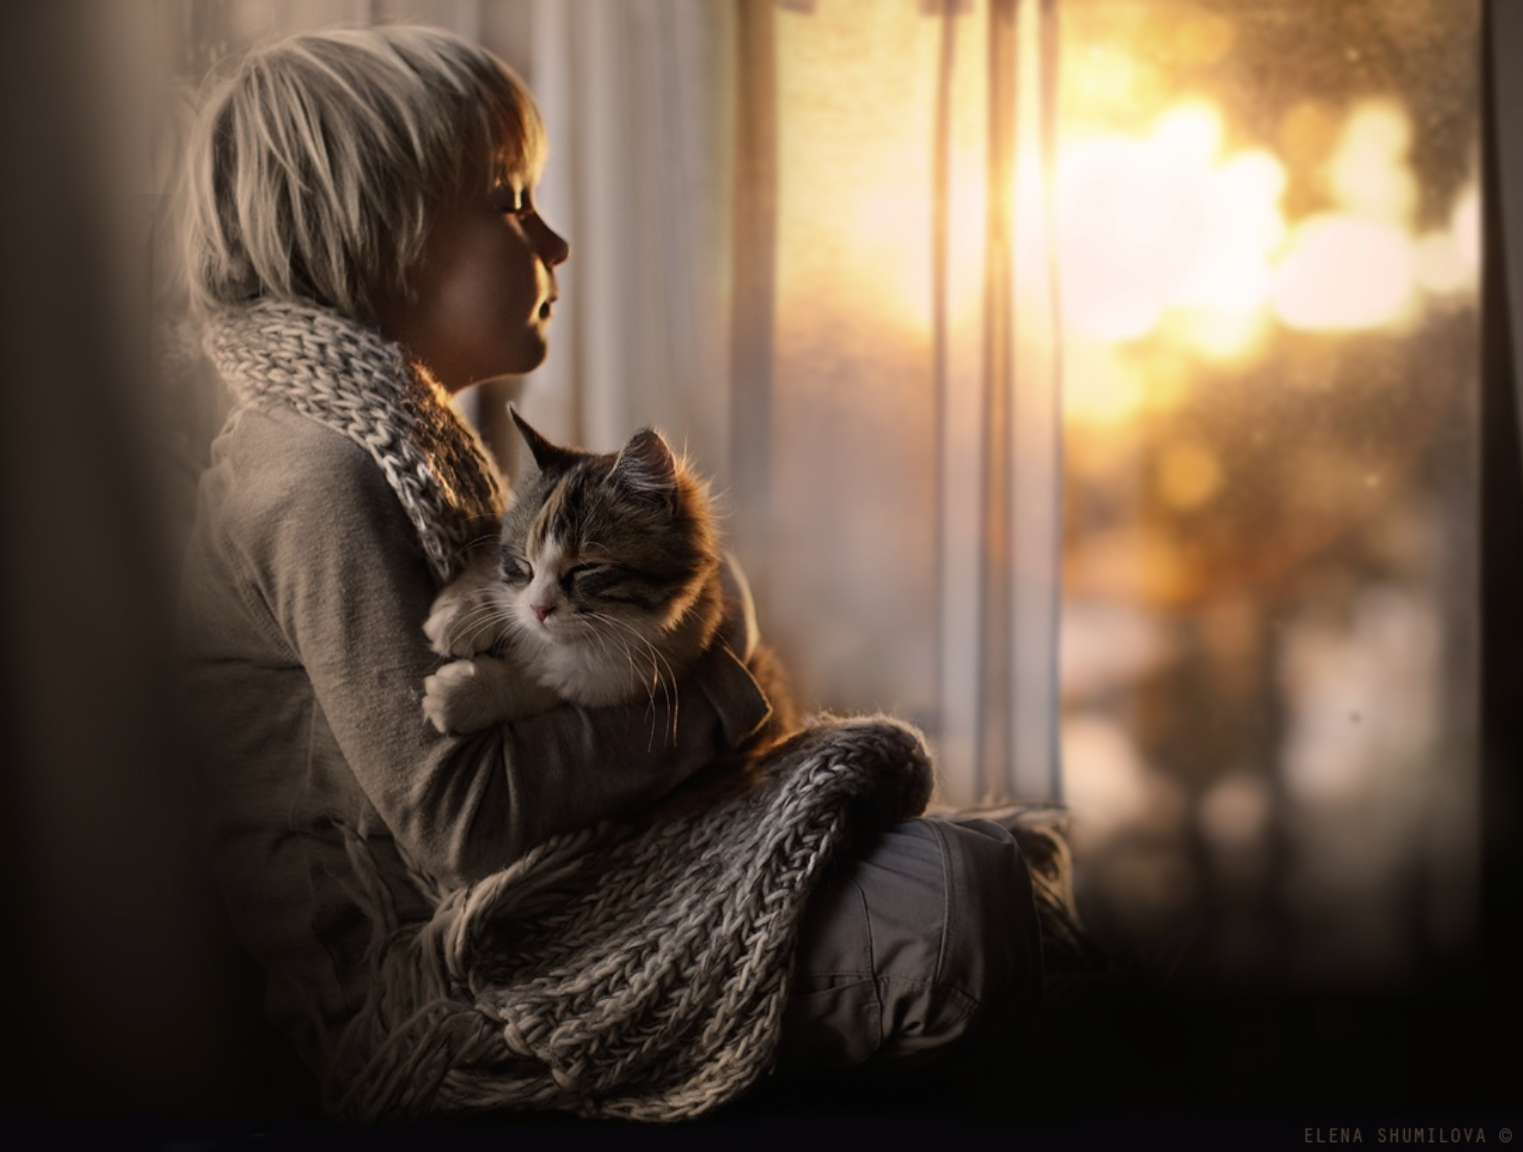 elena-shumilova-cat-photography-1